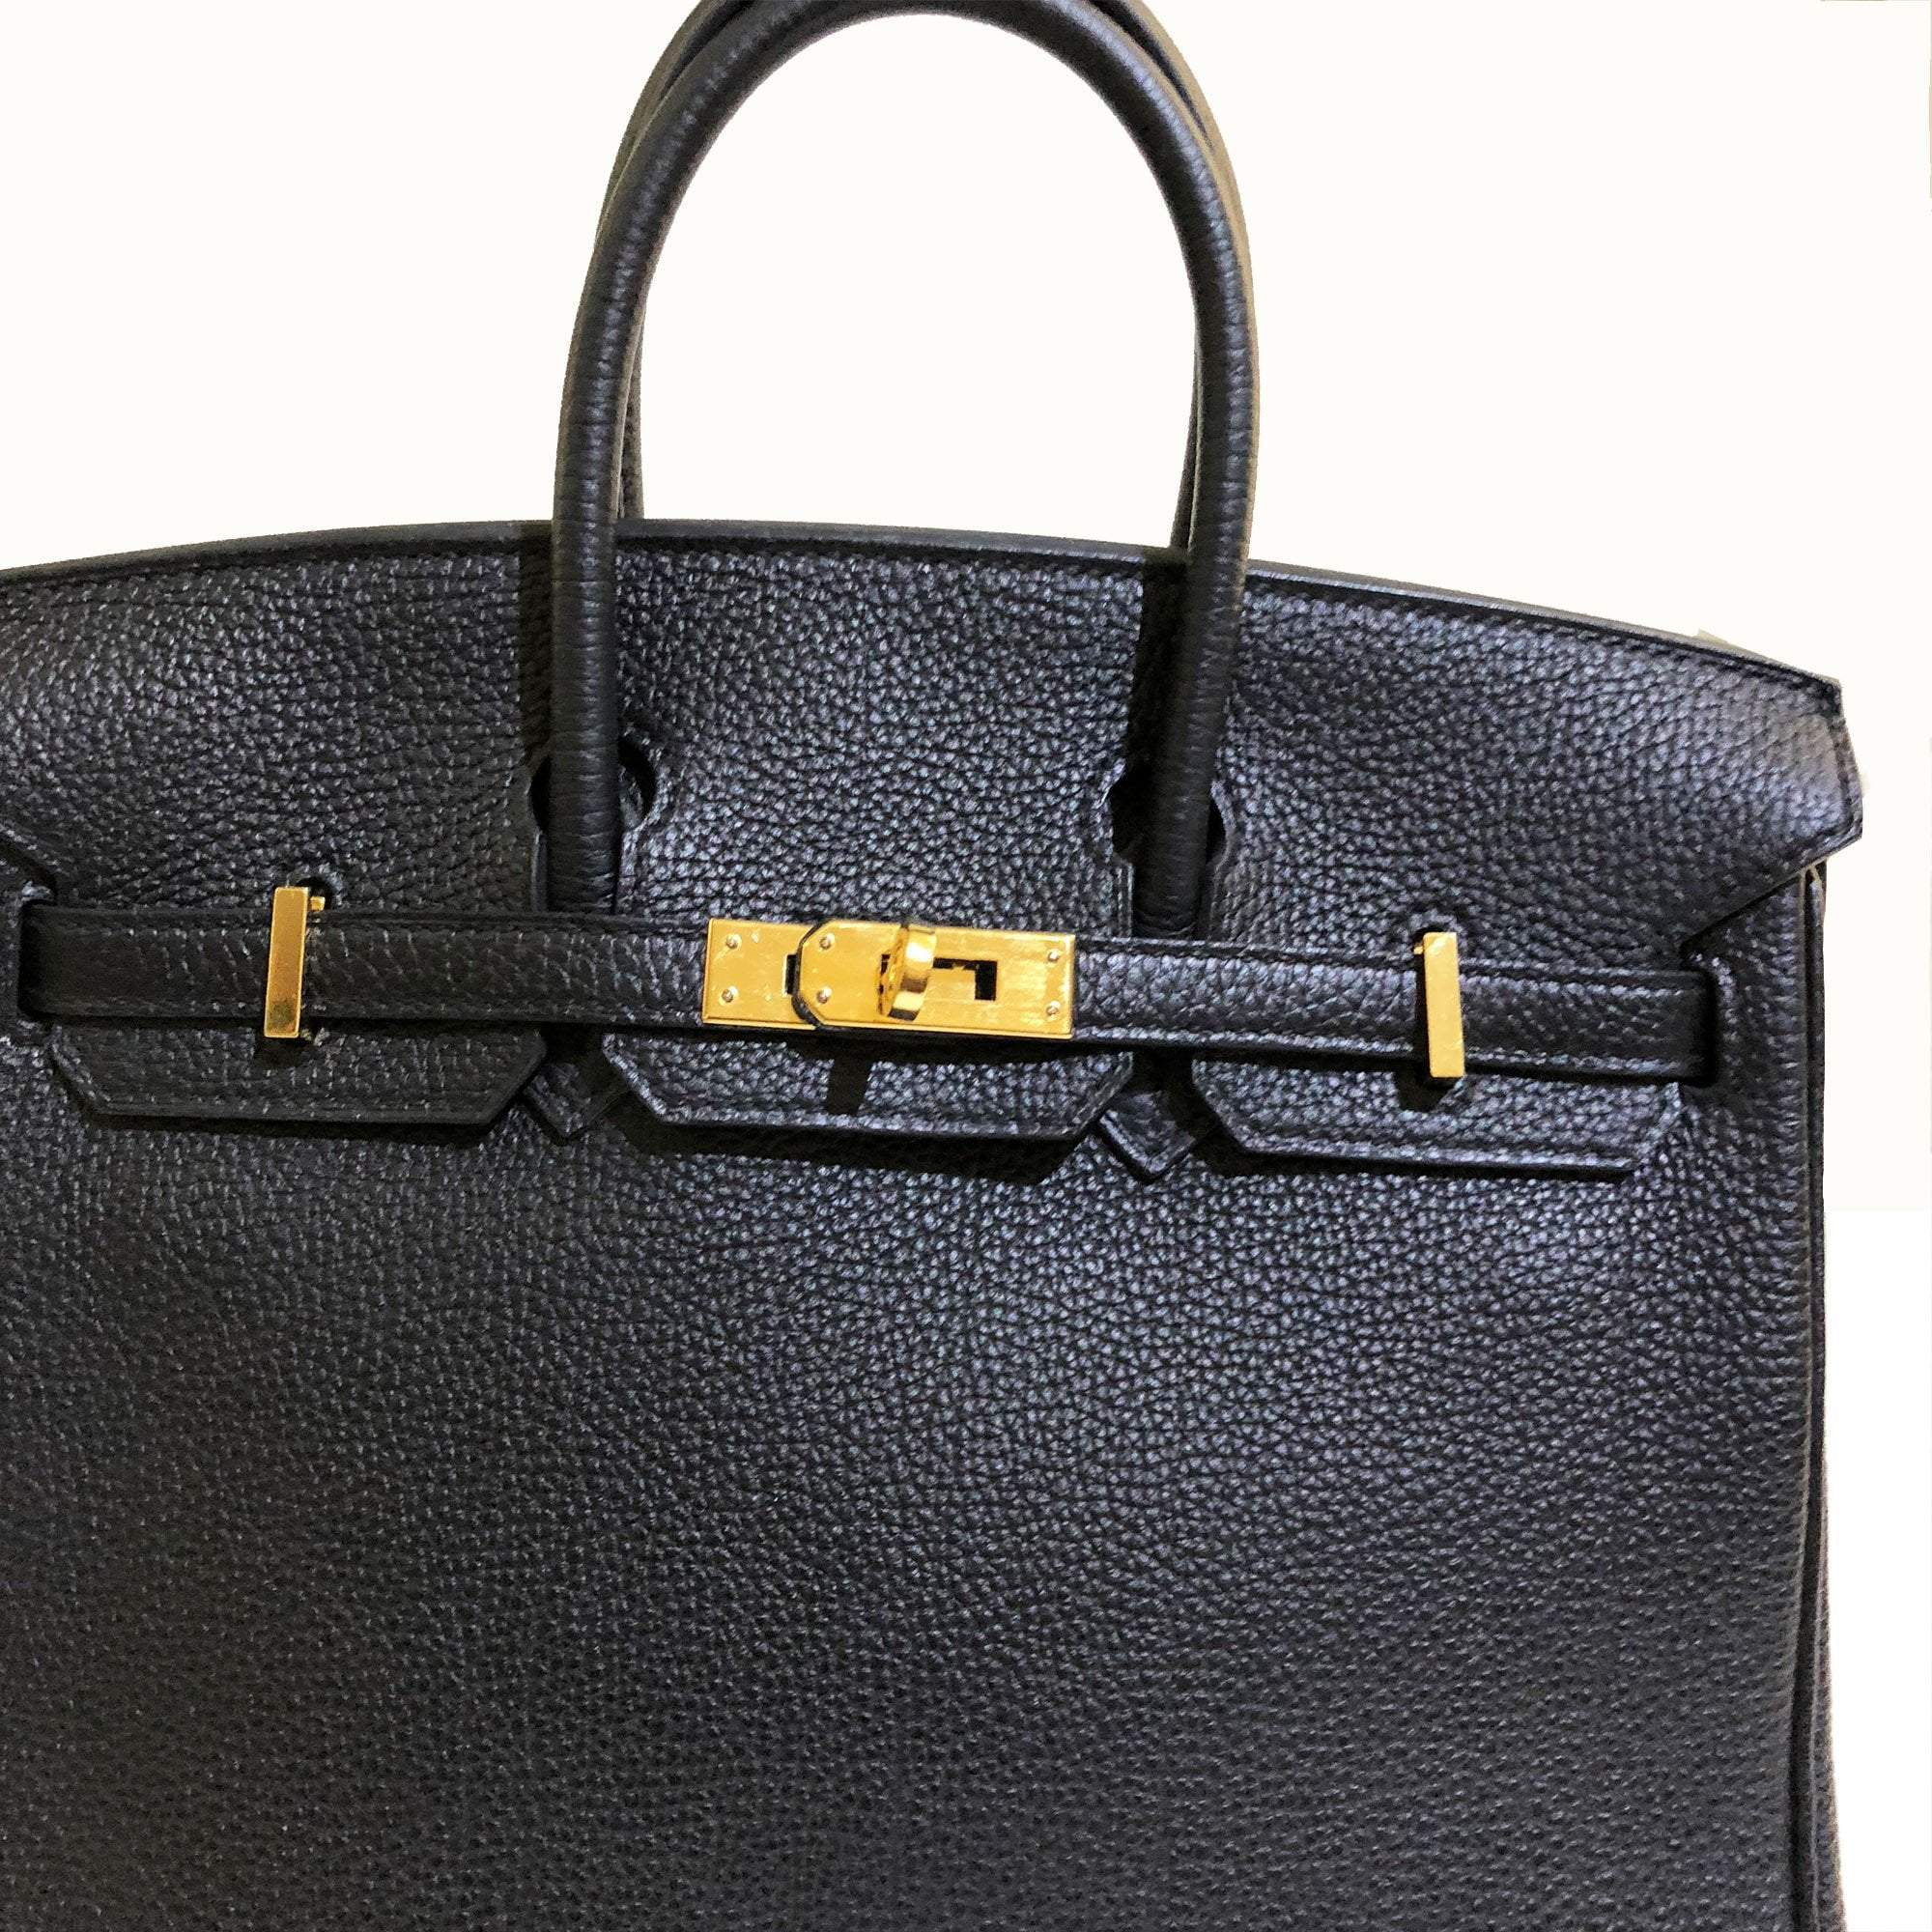 cd7306063e Hermes Birkin 25 Black Togo Bag – Garderobe